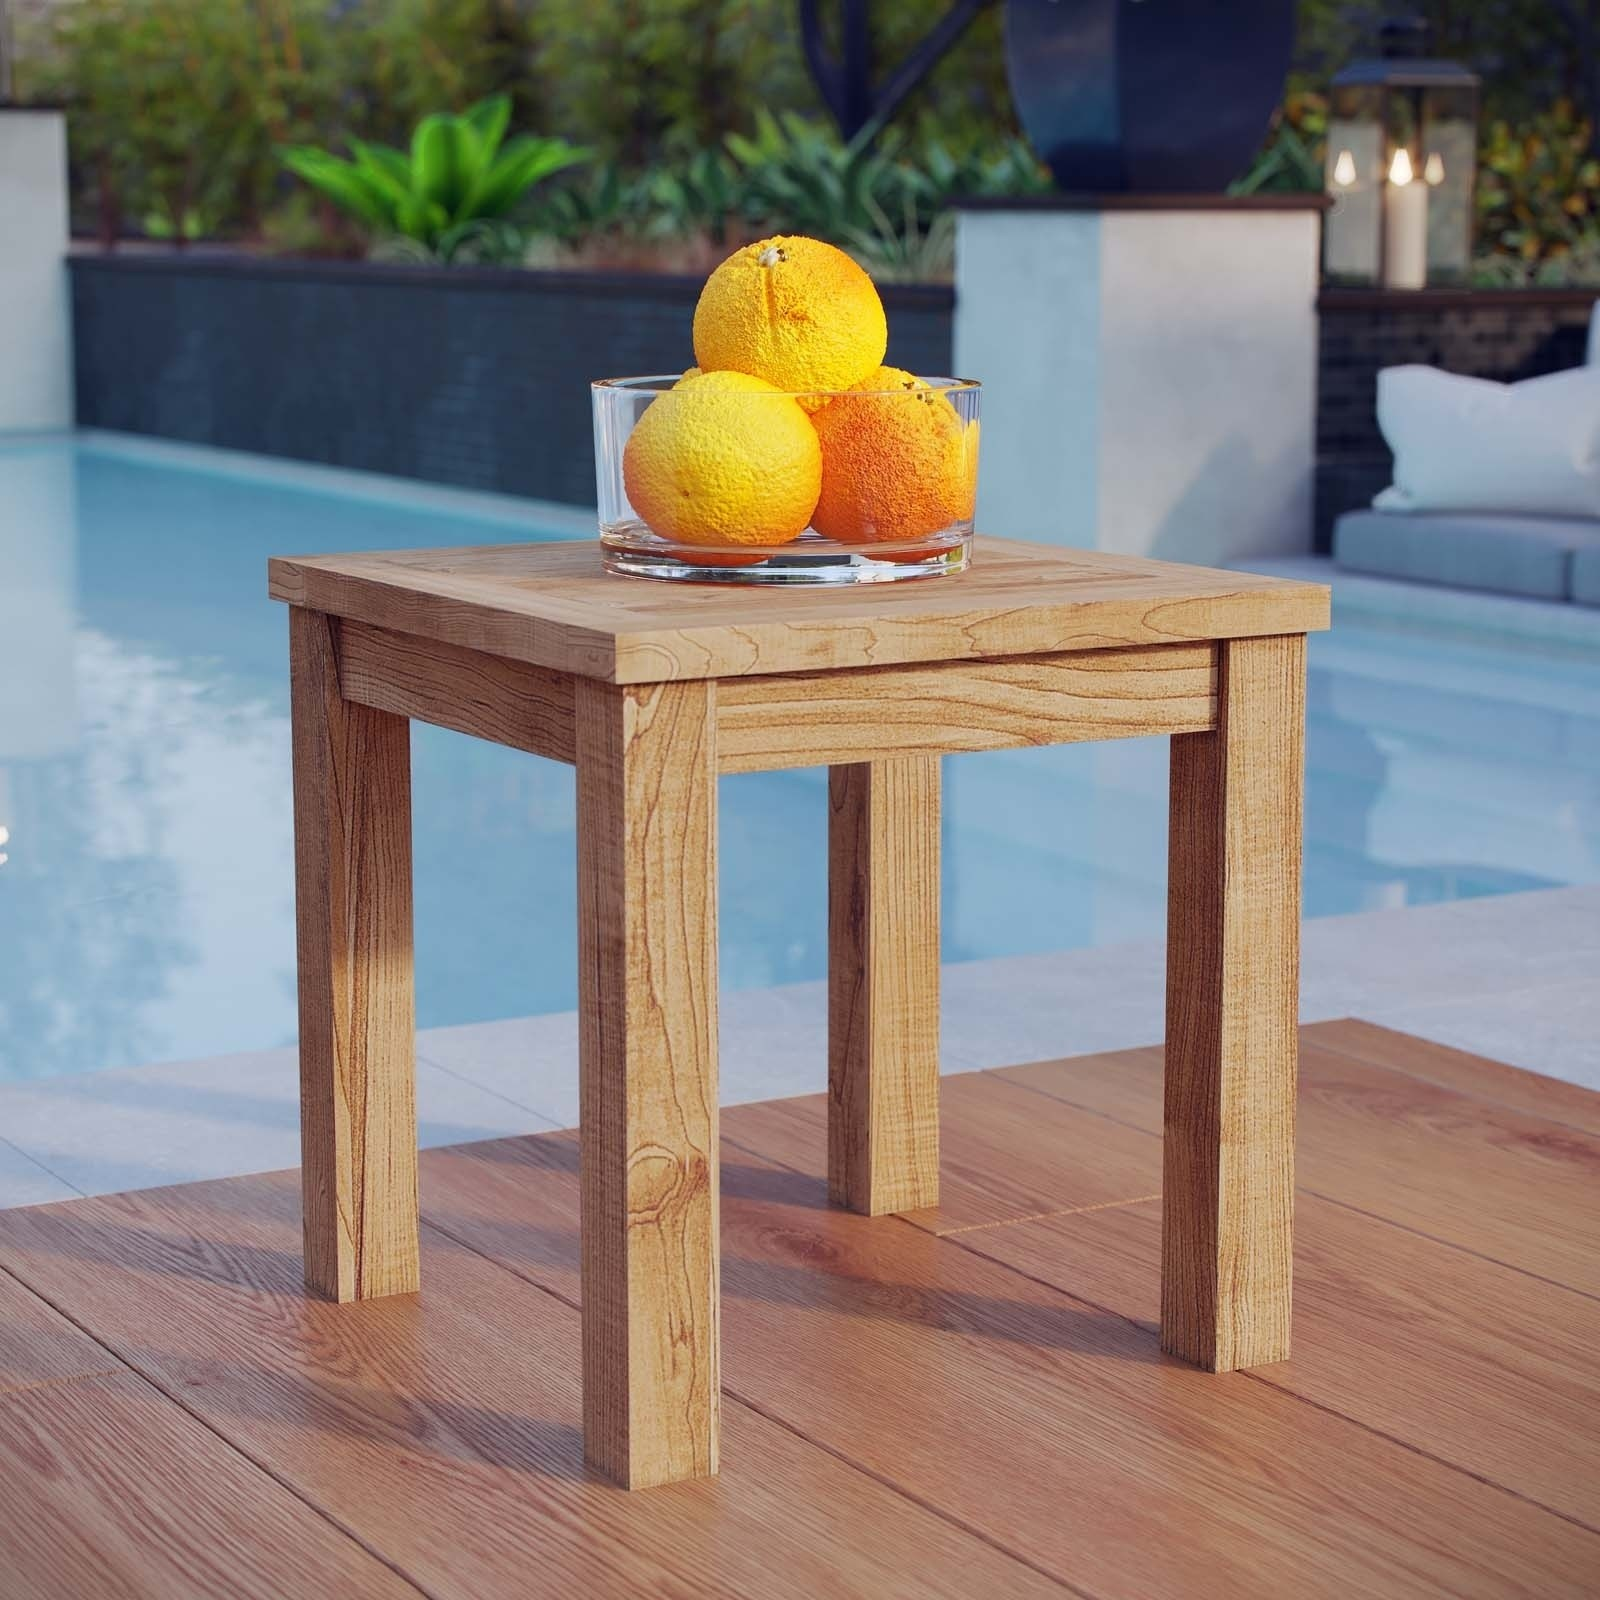 havenside home pocasset outdoor teak side table free shipping pier patio natural wood small today accent lamps contemporary one imports locations west elm mirrored goods entryway